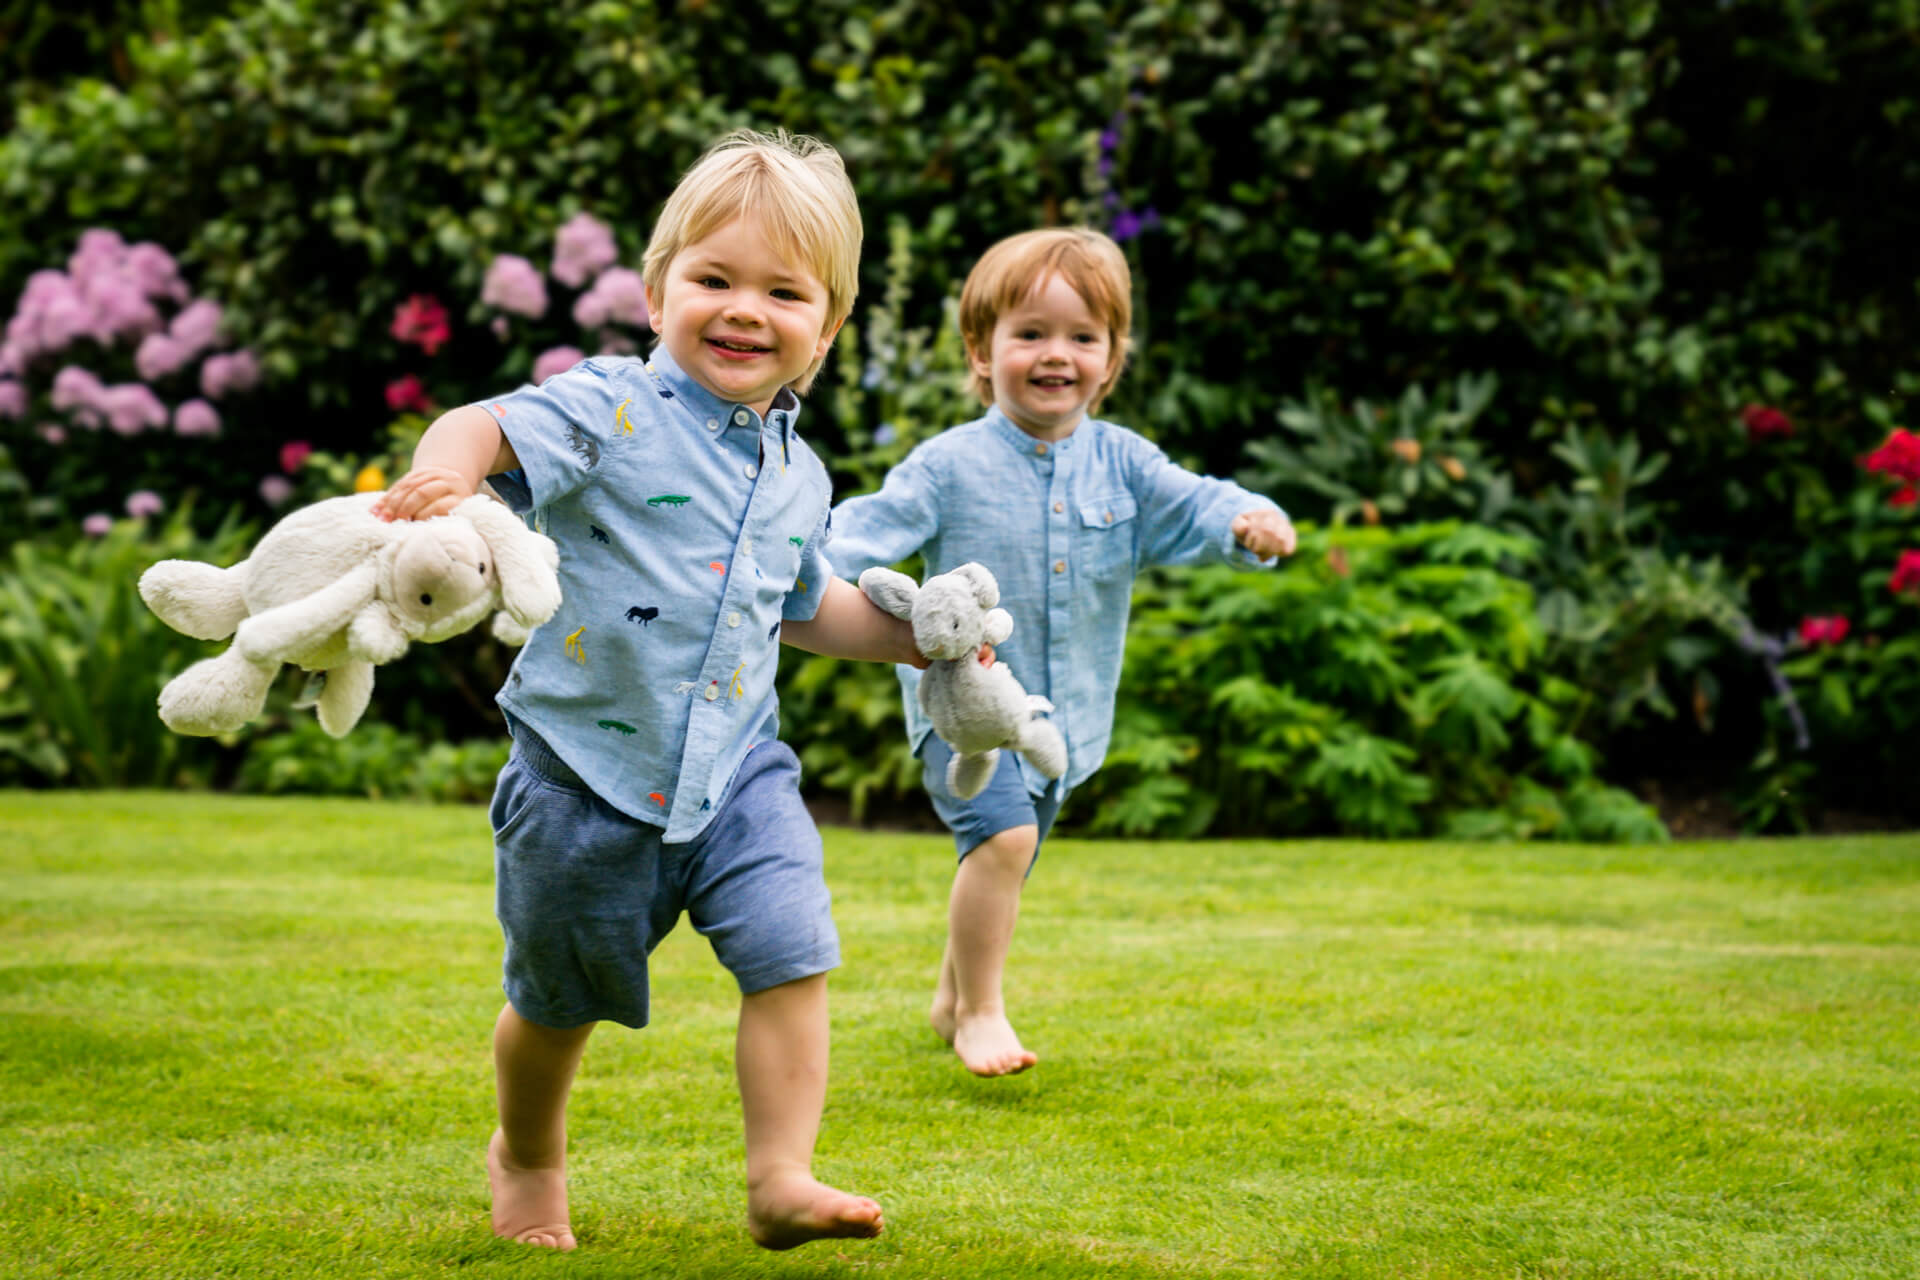 two boys running in their garden together